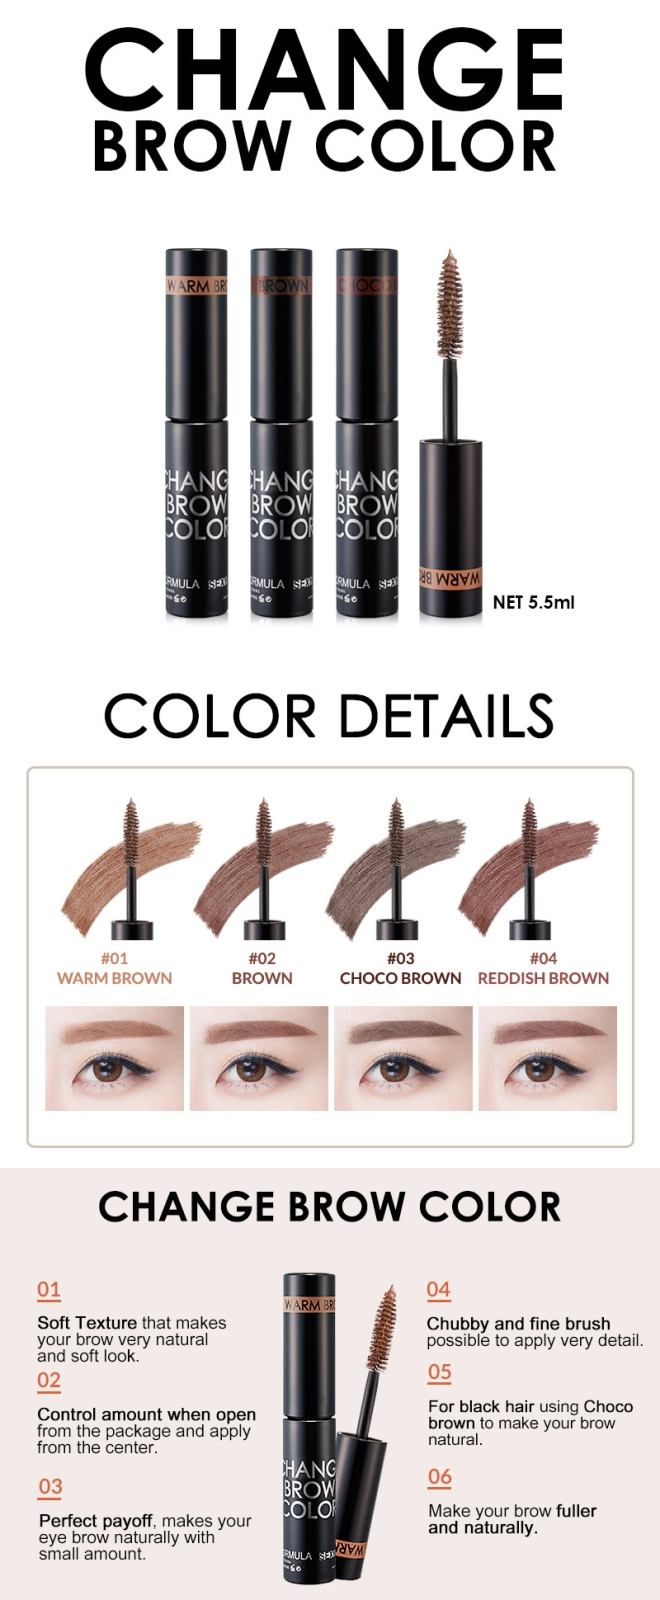 Change Brow Color (Info 01)